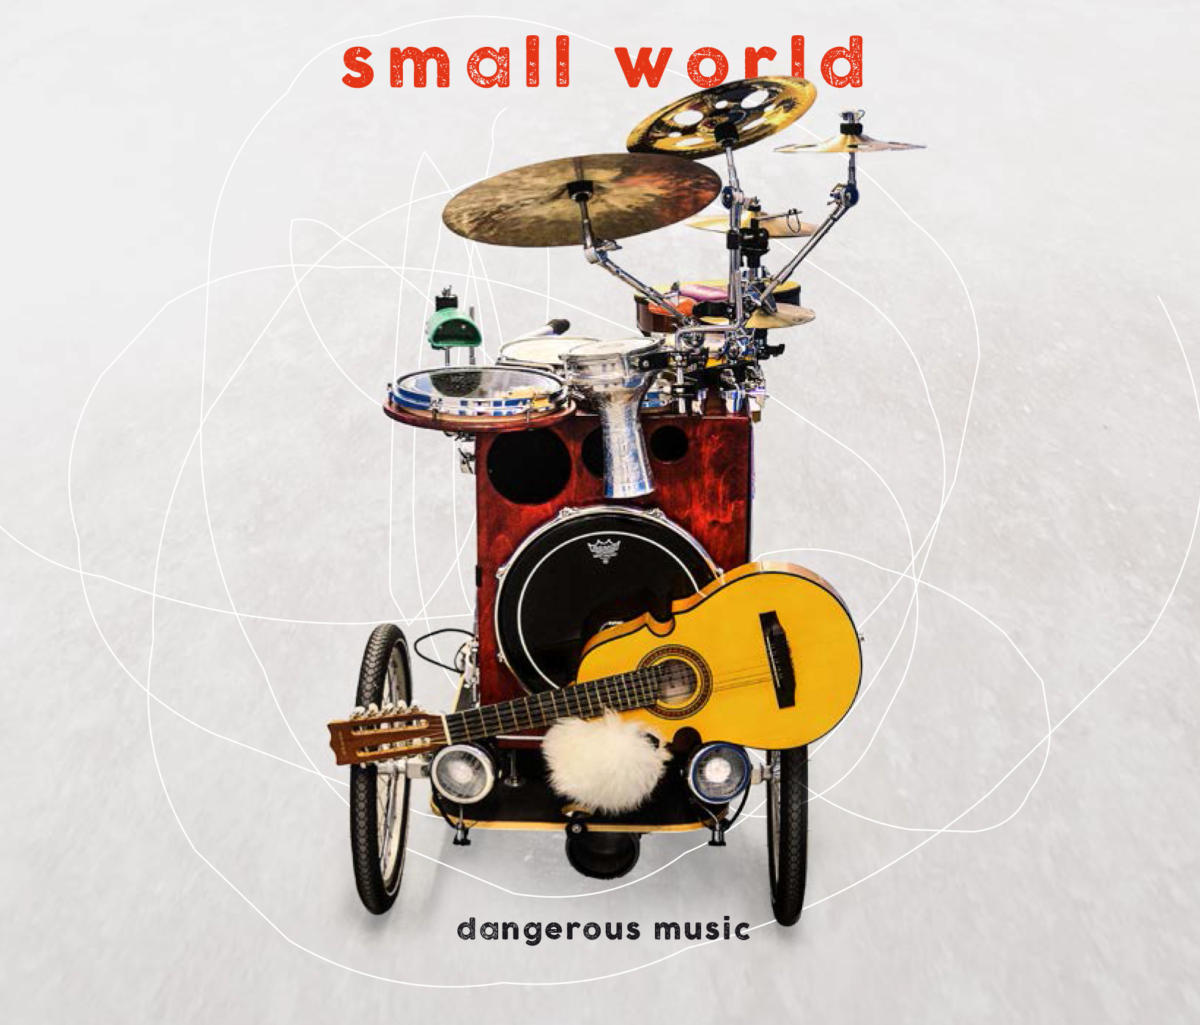 smallworldmusic.berlin